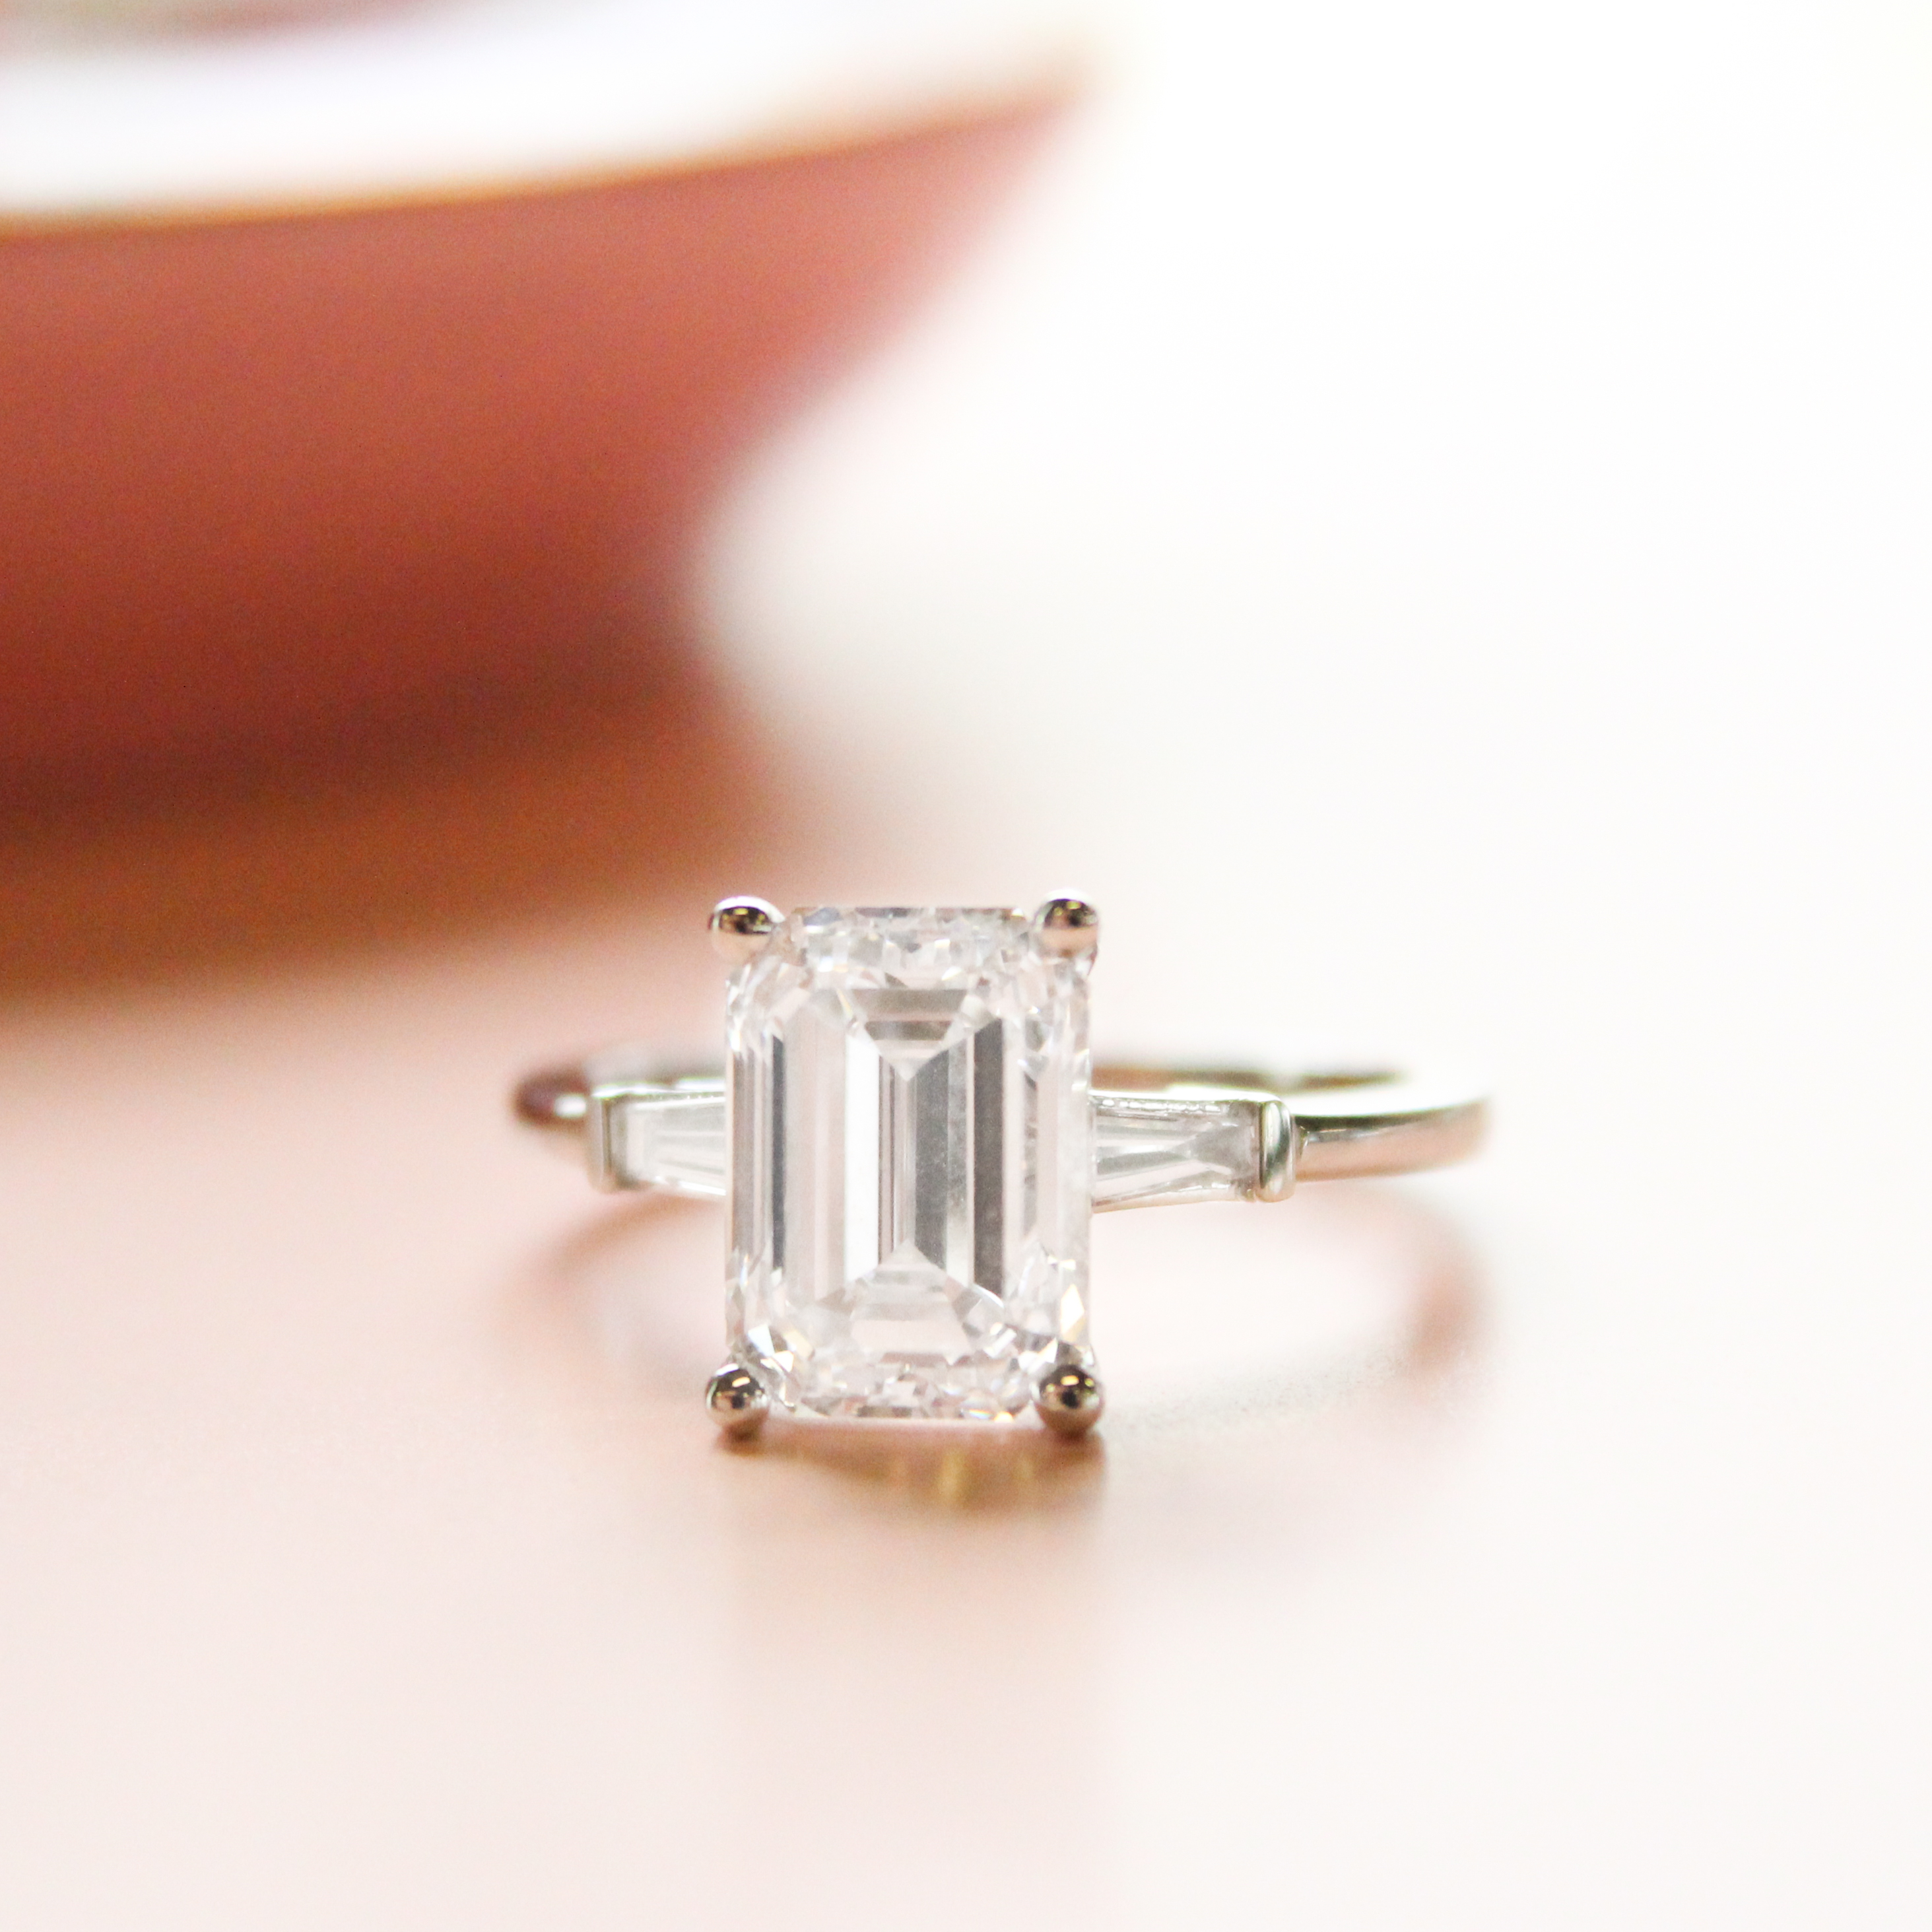 Beautiful Baguette Diamond Ring Designs Regarding Emerald Cut Engagement Rings With Tapered Baguette Side Stones (View 12 of 25)